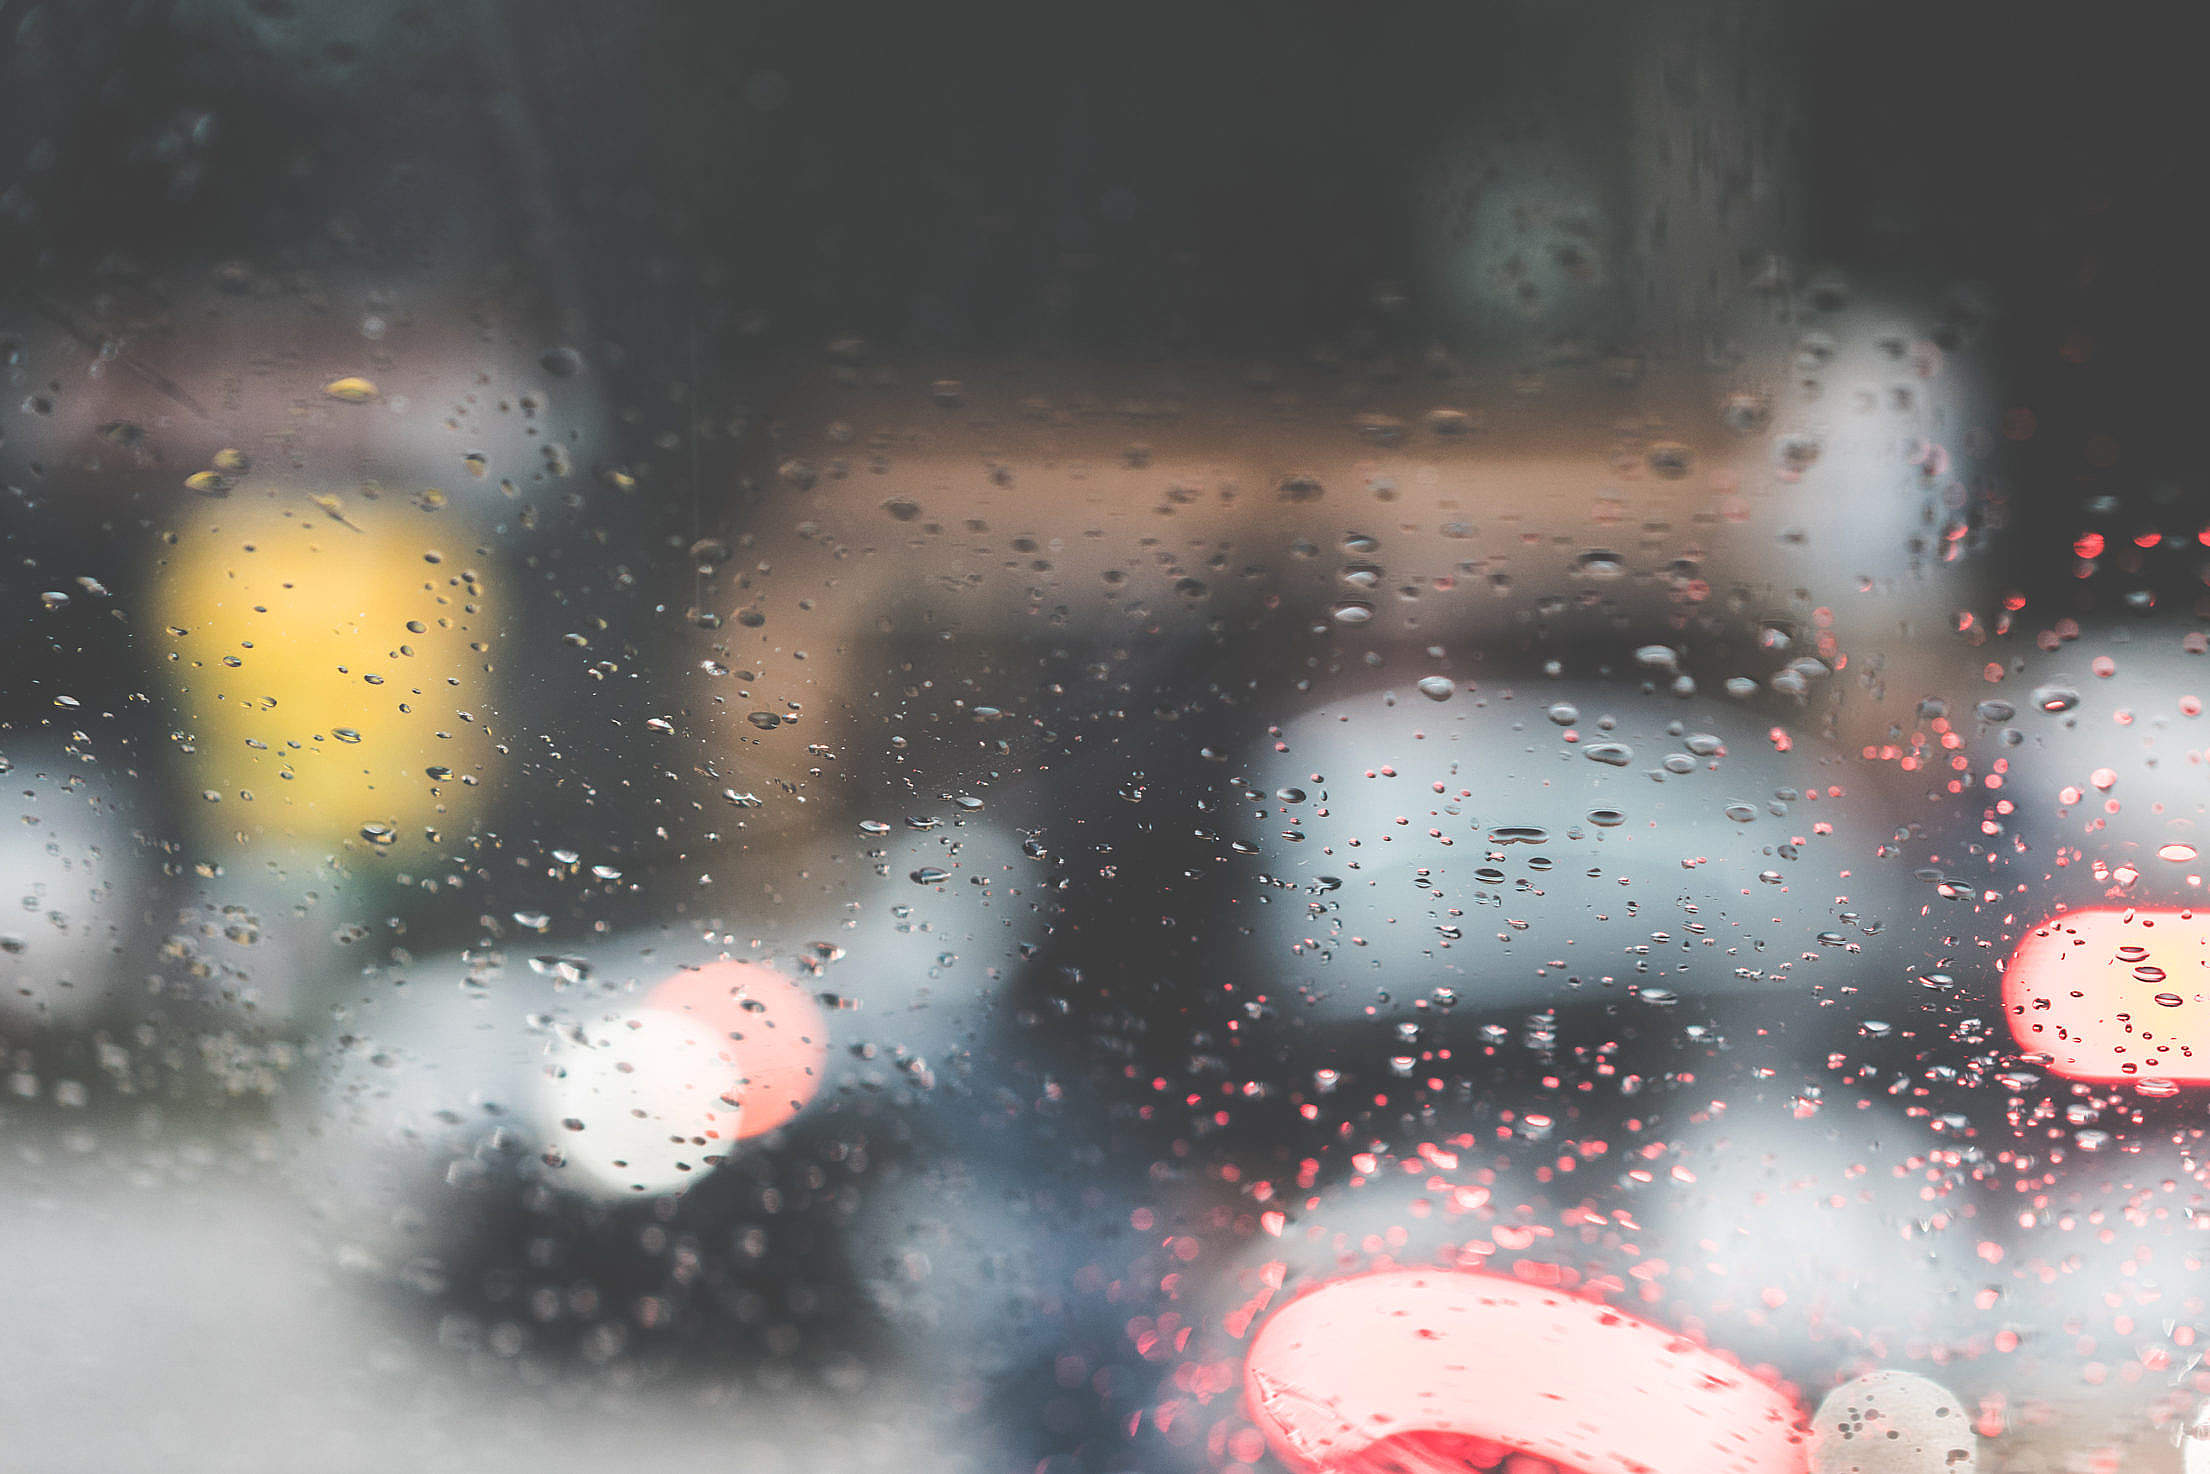 Rain Drops on a Car Windshield in a Rainy Day Free Stock Photo